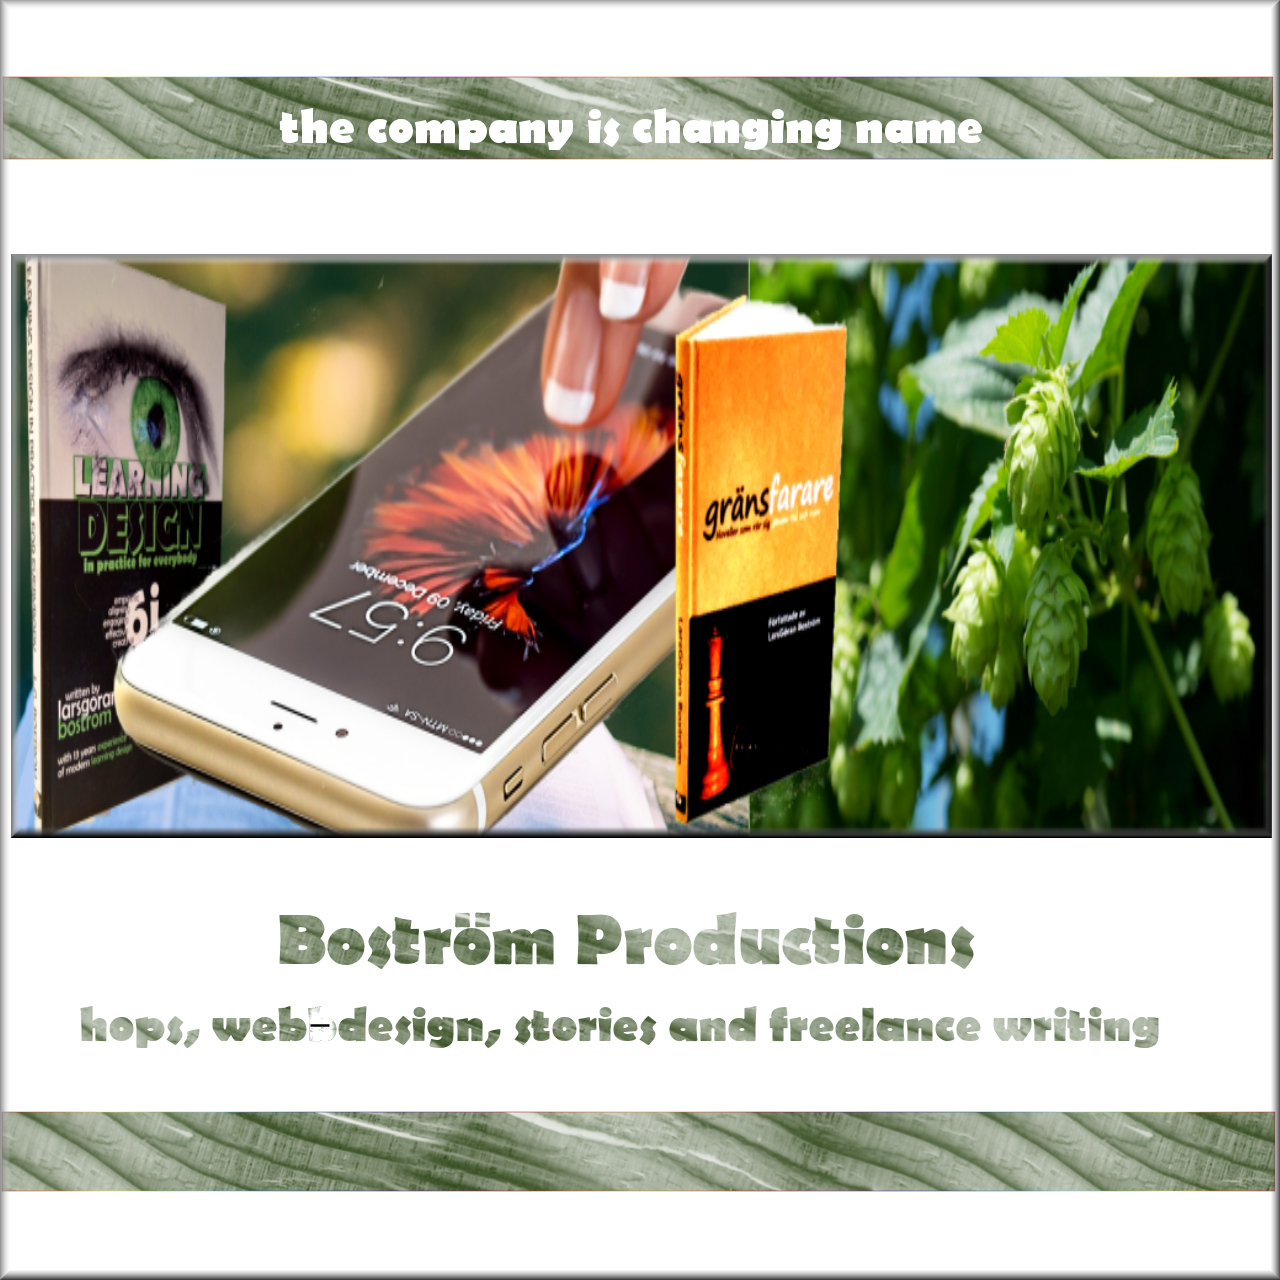 The company changing name to Boström Productions